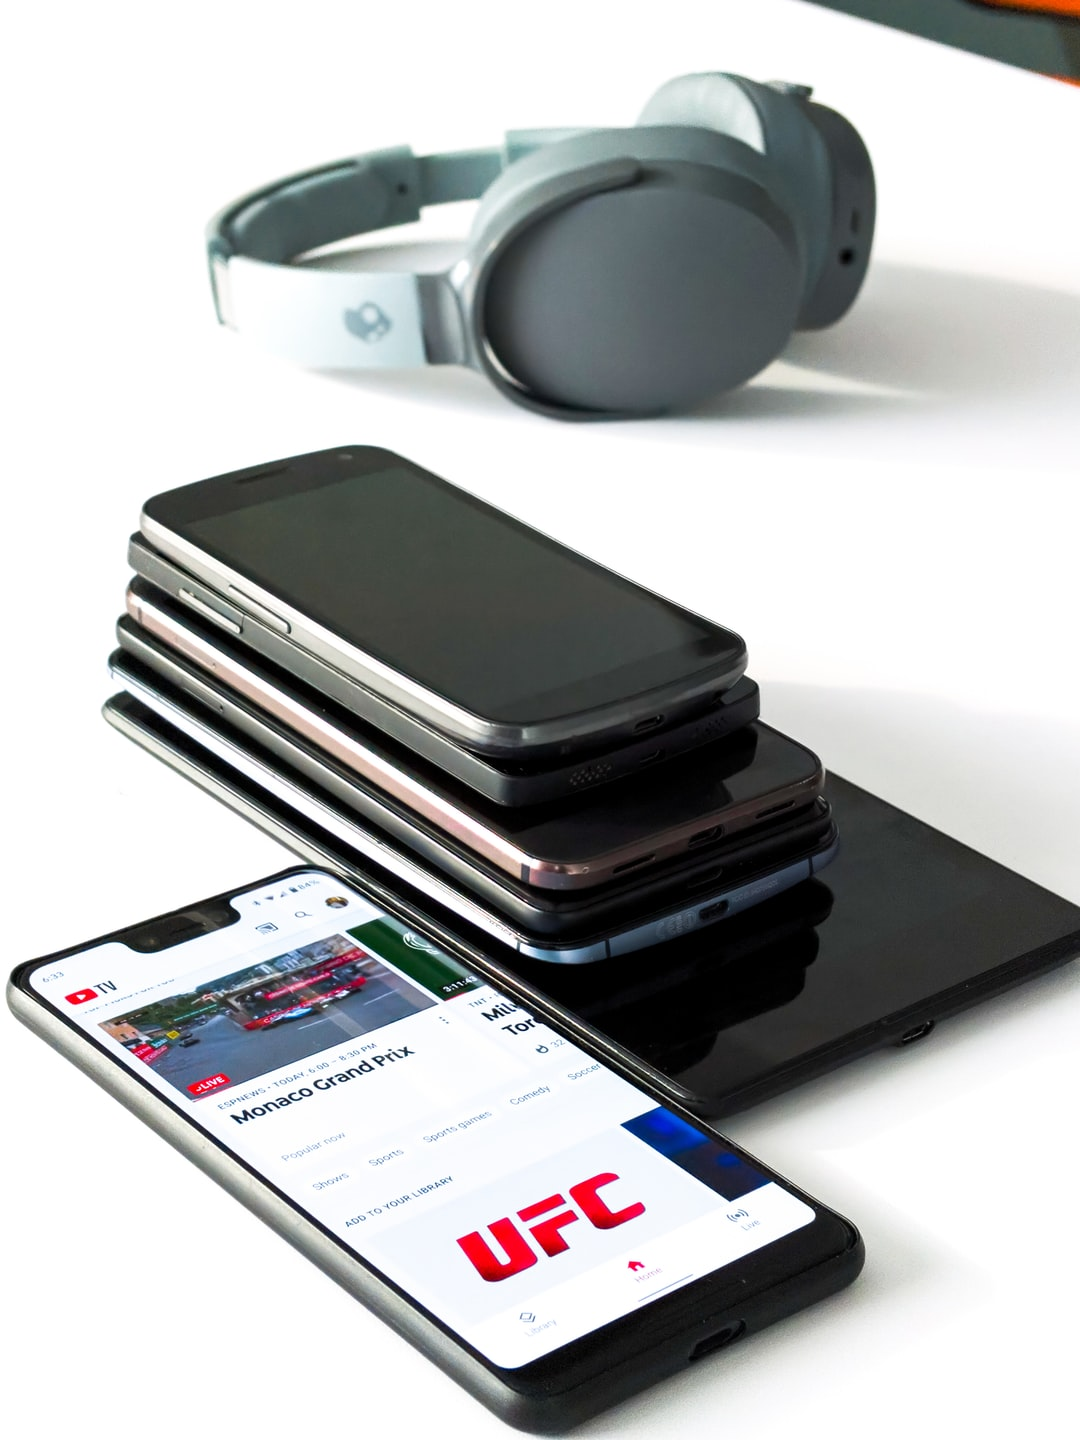 Workstation consisting of several phones, a tablet and Bluetooth headphones